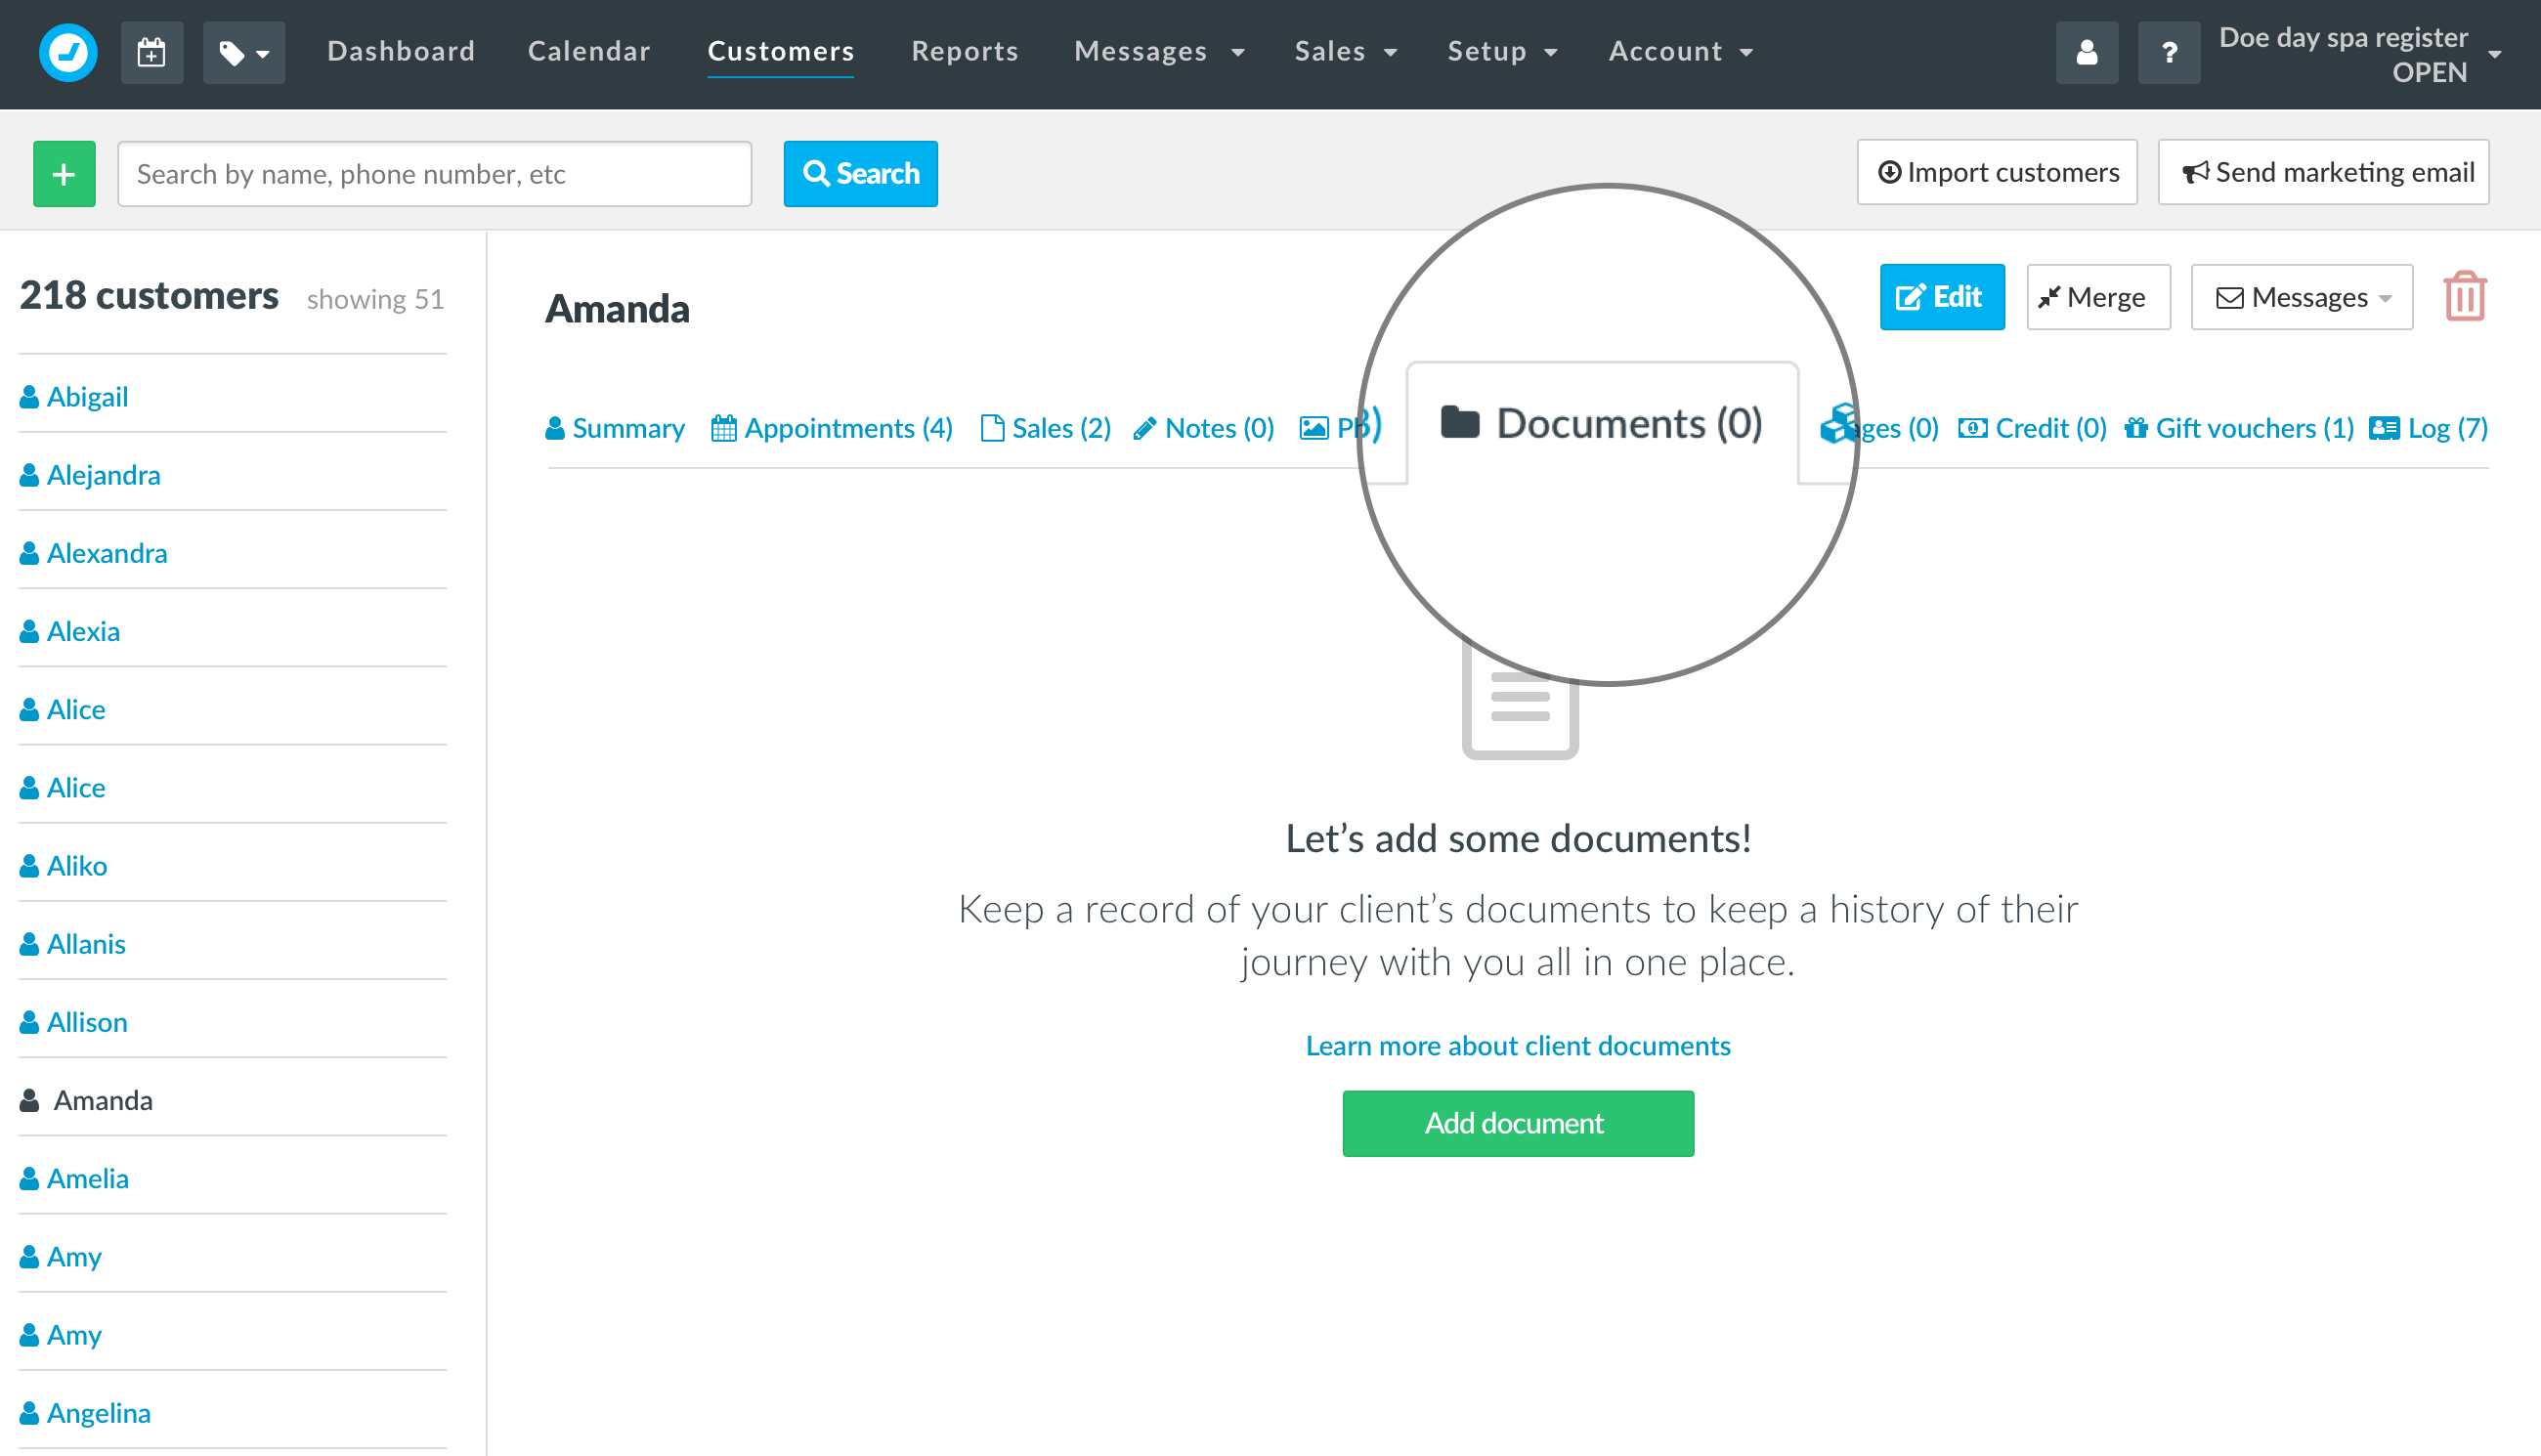 How to upload, view and download documents - Timely Help Docs